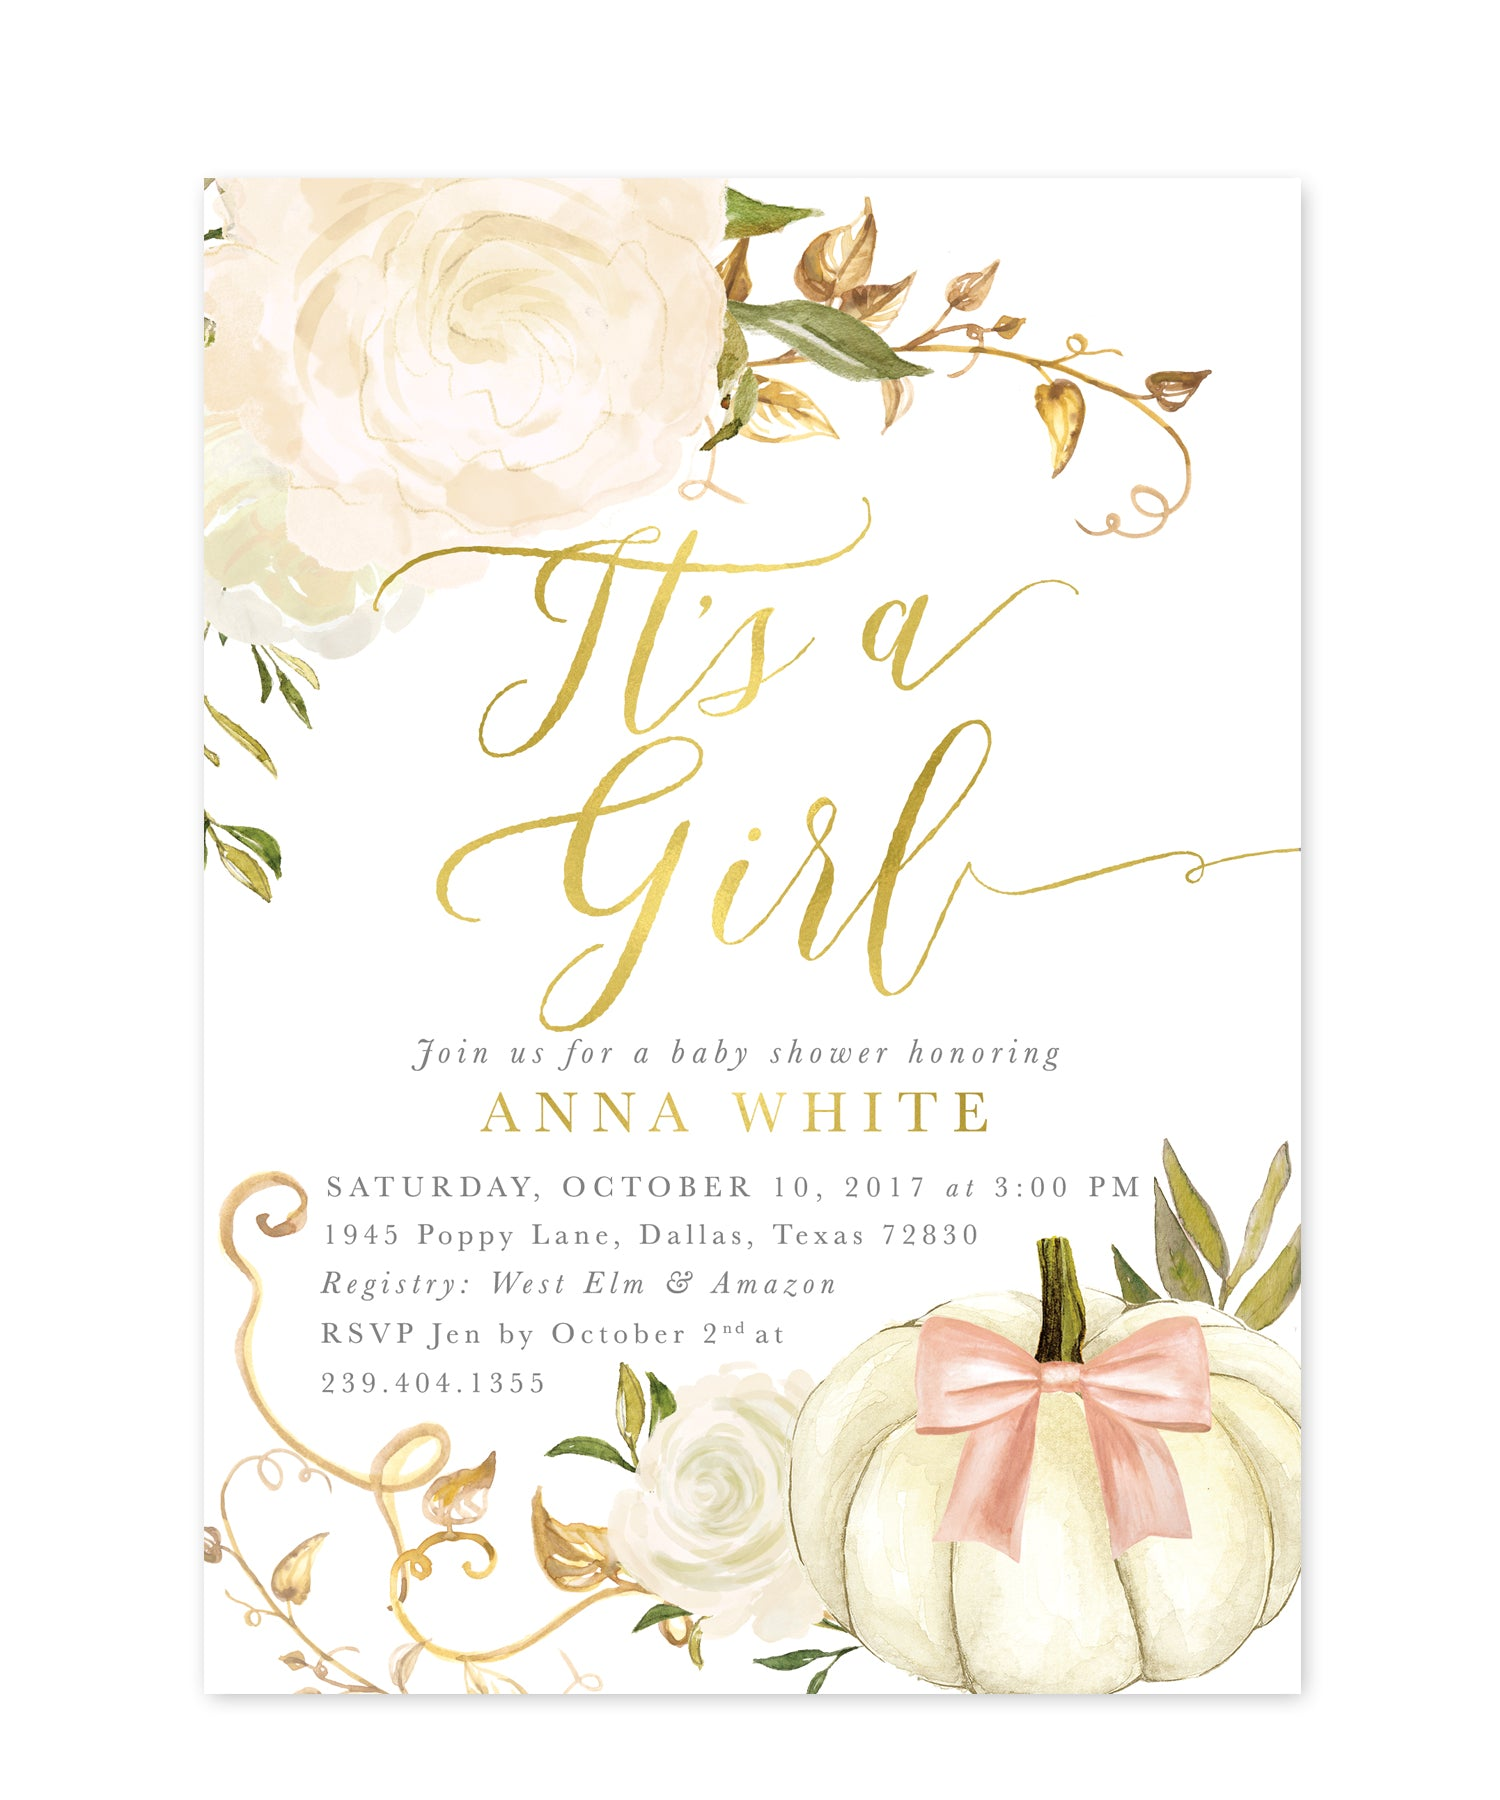 Fall girl baby shower invitation girl pumpkin baby shower invite fall girl baby shower invitation girl pumpkin baby shower invite its a girl invitation autumn white roses printed printable fall 2 filmwisefo